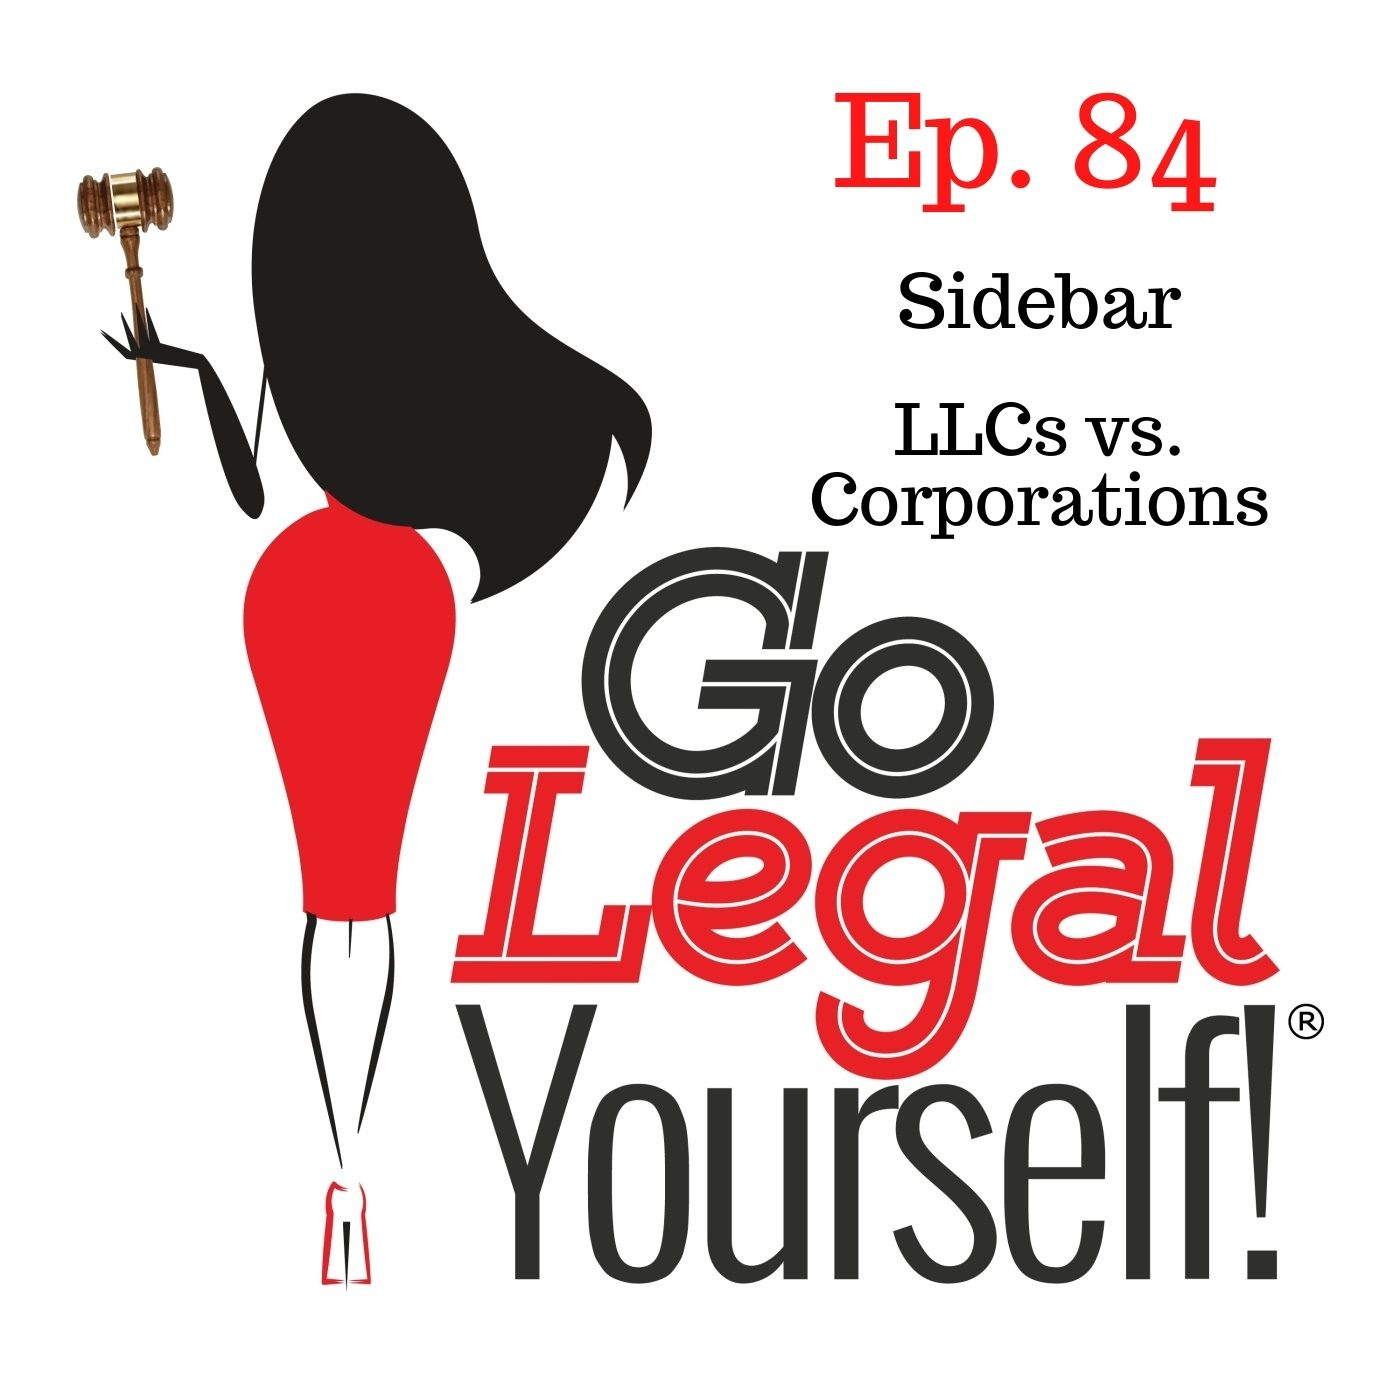 Ep. 84 Sidebar: LLCs vs. Corporations